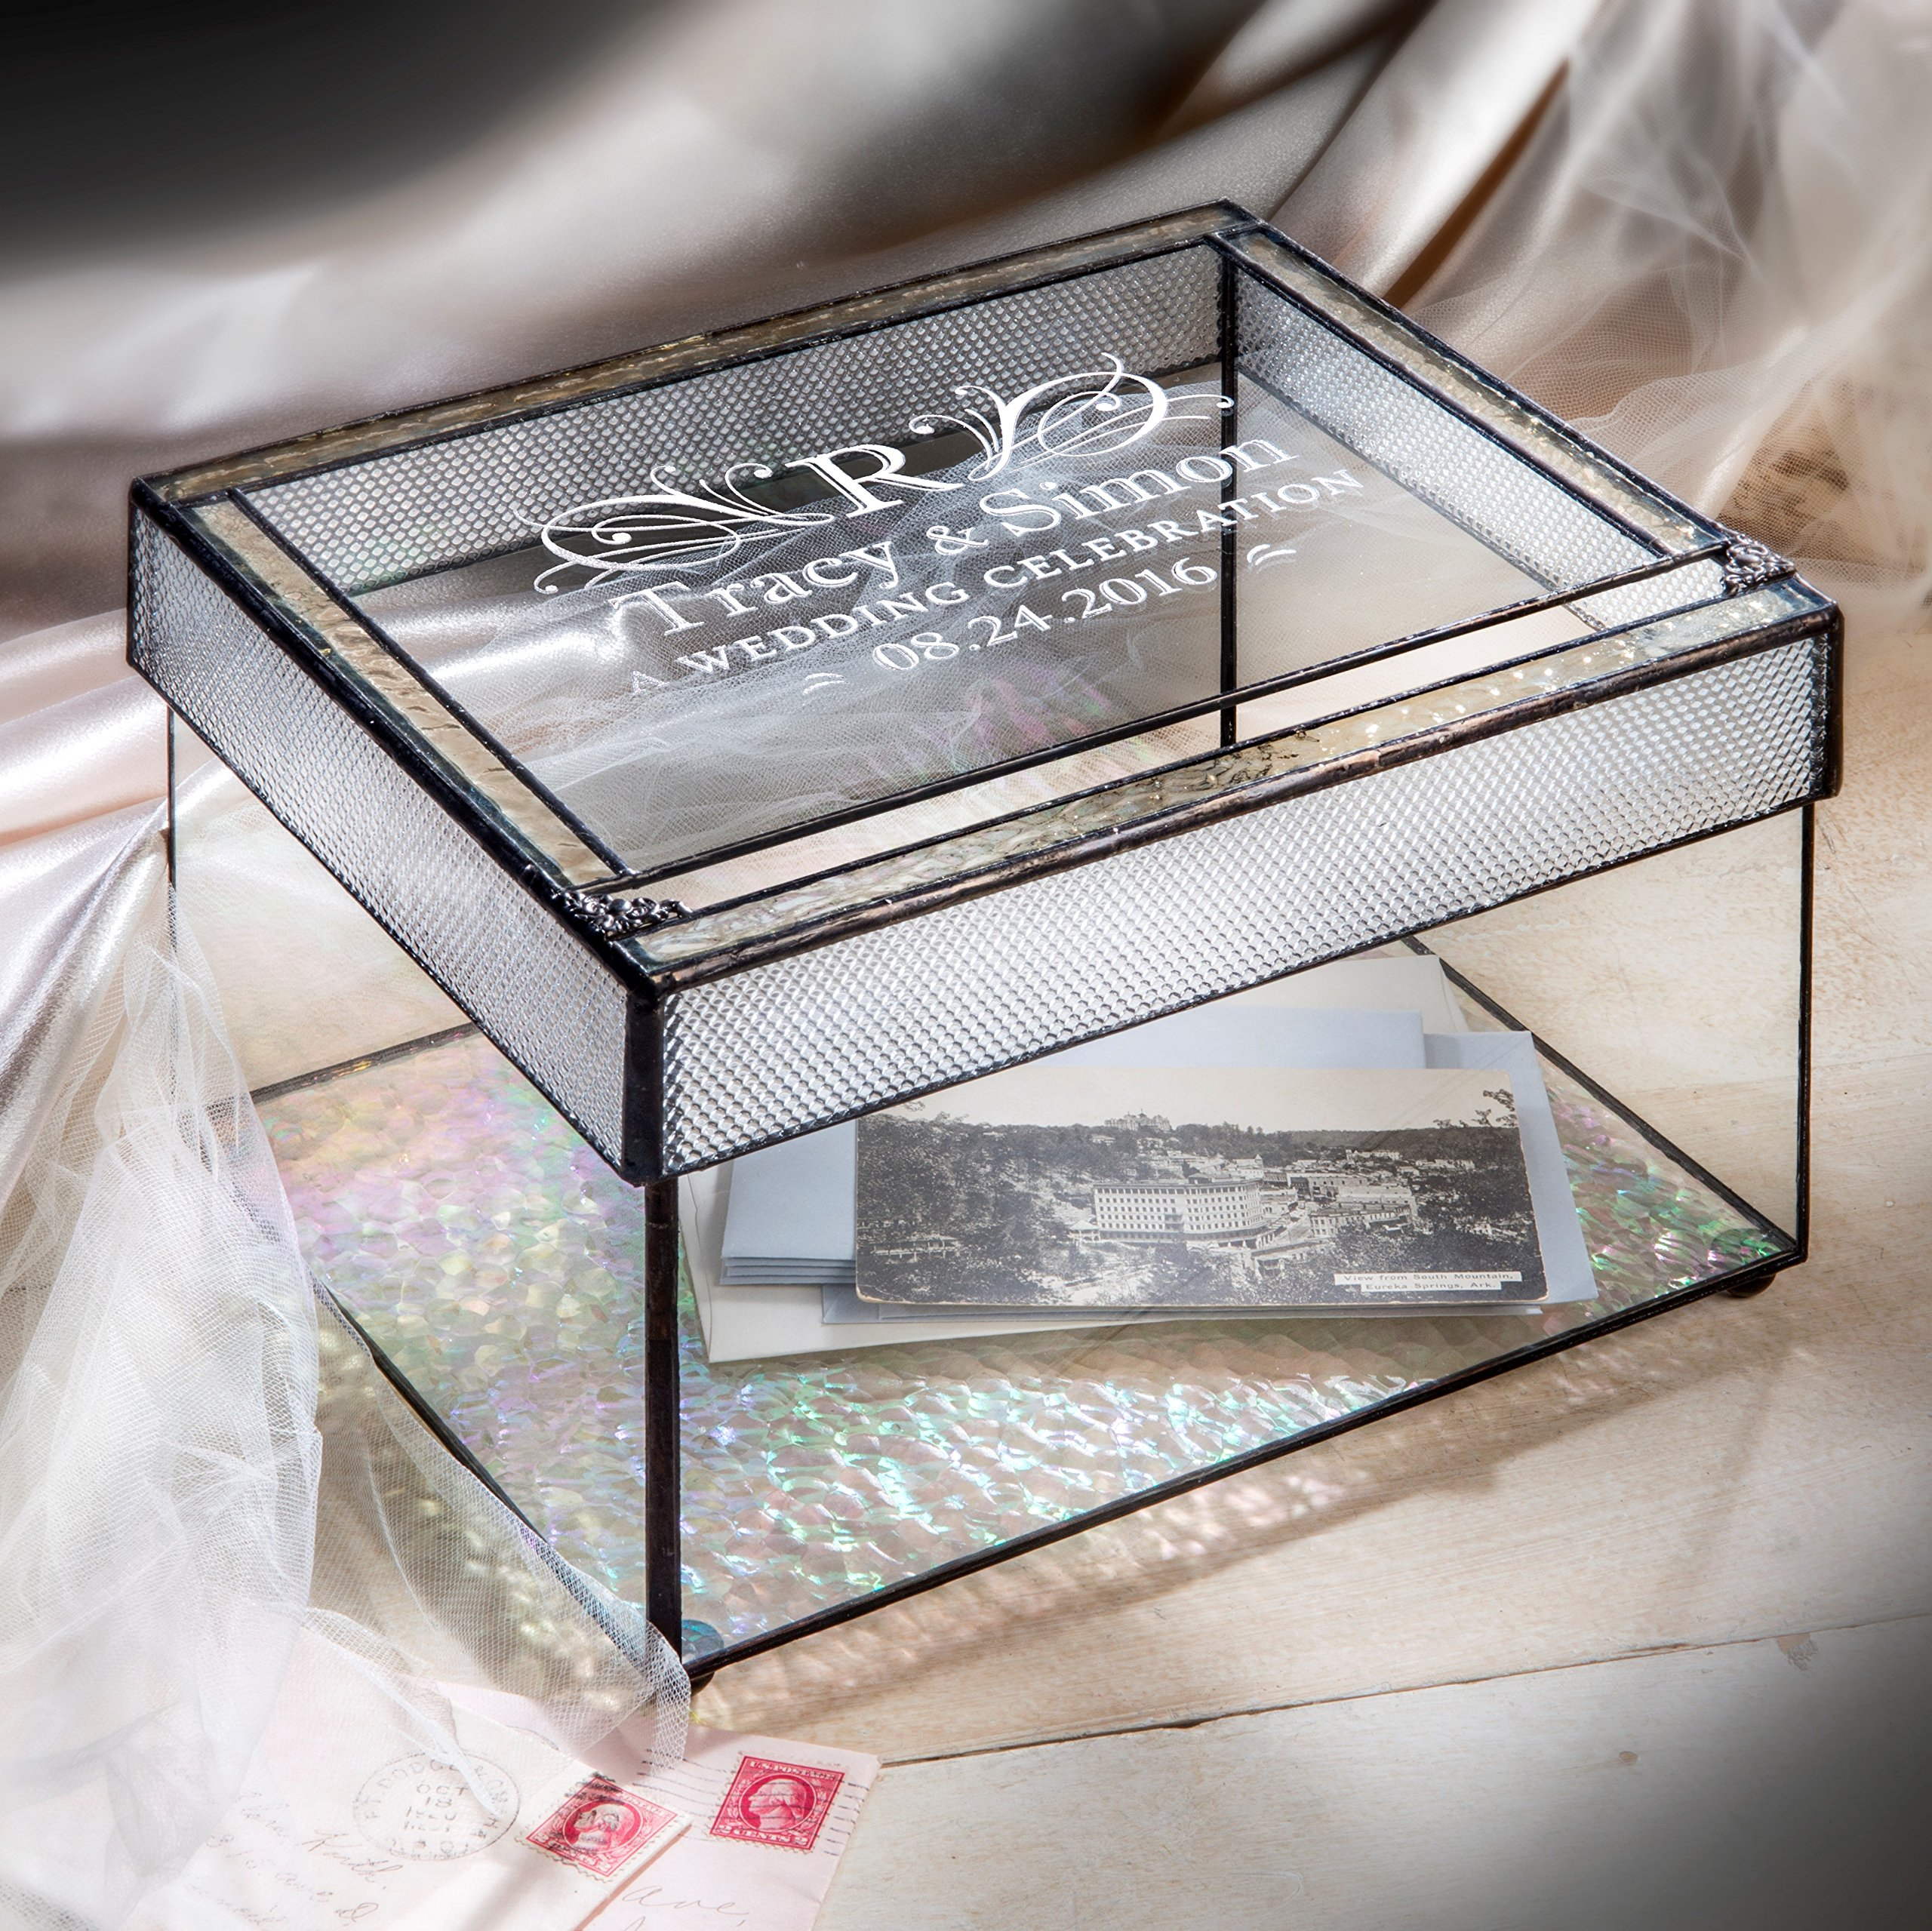 J Devlin Box 841 Personalized Wedding Card Box Engraved Glass Card Holder Reception Decor Keepsake Display by J Devlin Glass Art